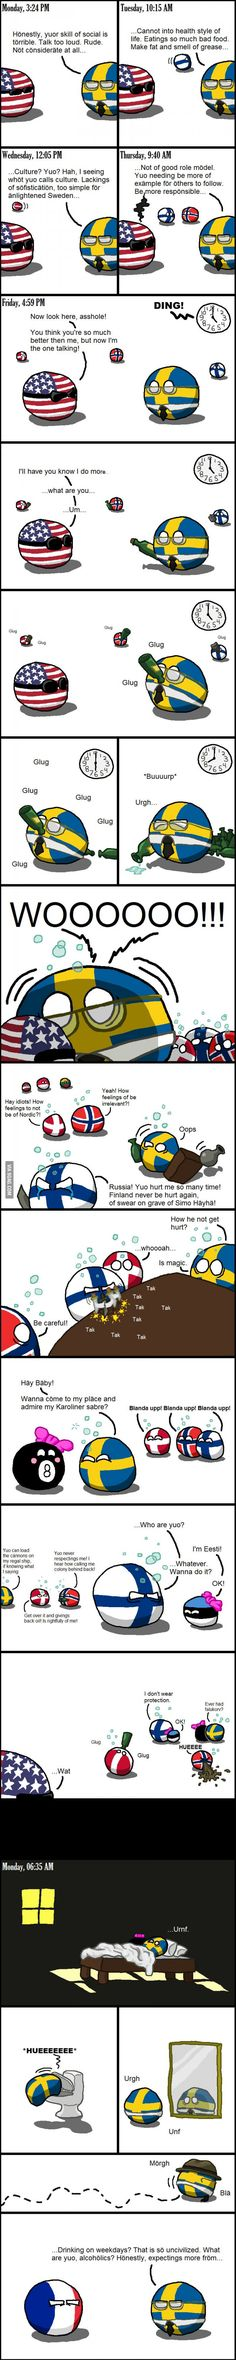 Söphisticäted nordics